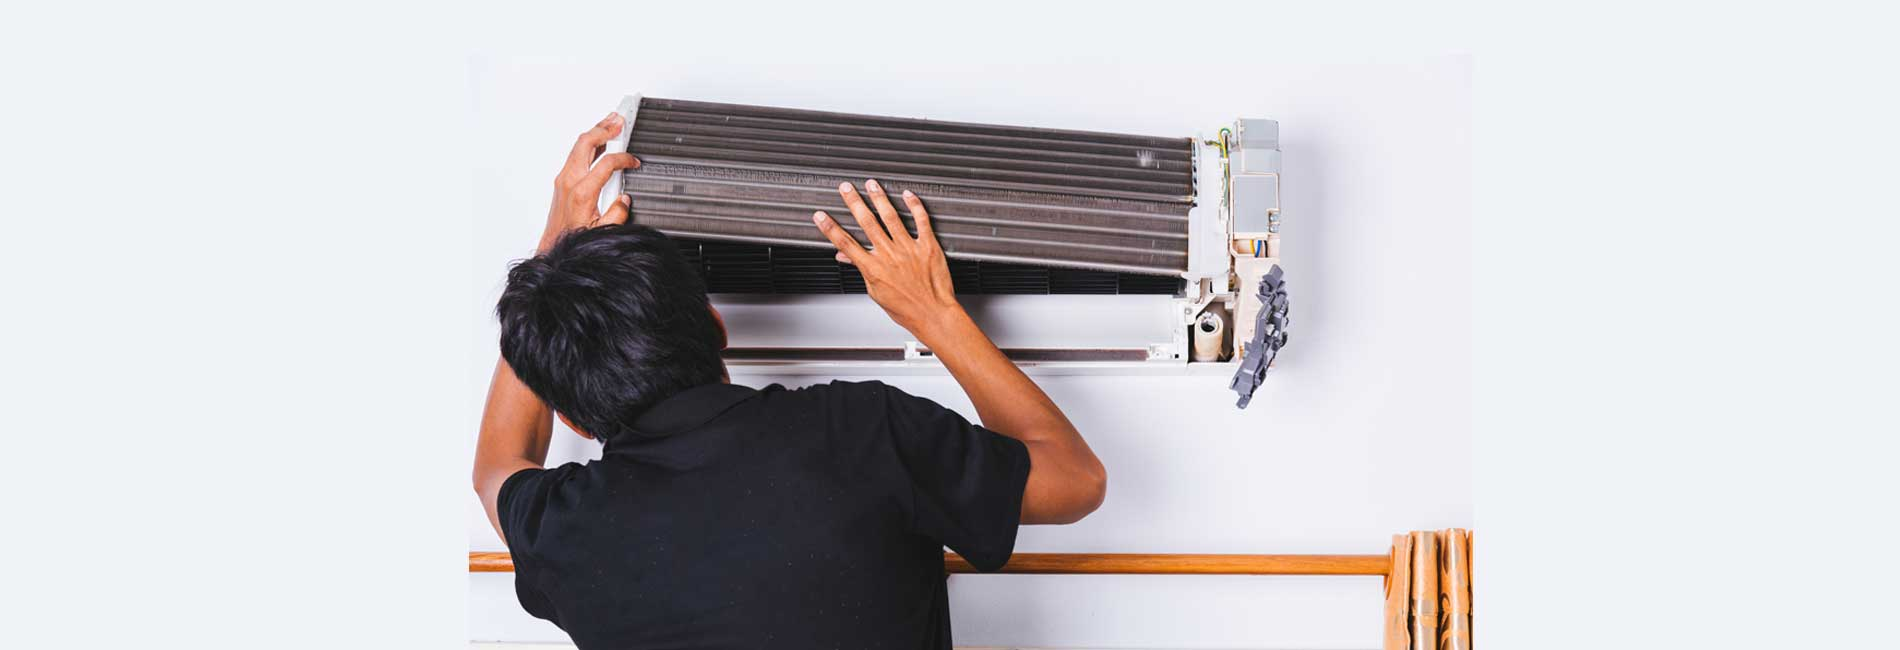 Panasonic AC Installation in Kanathur